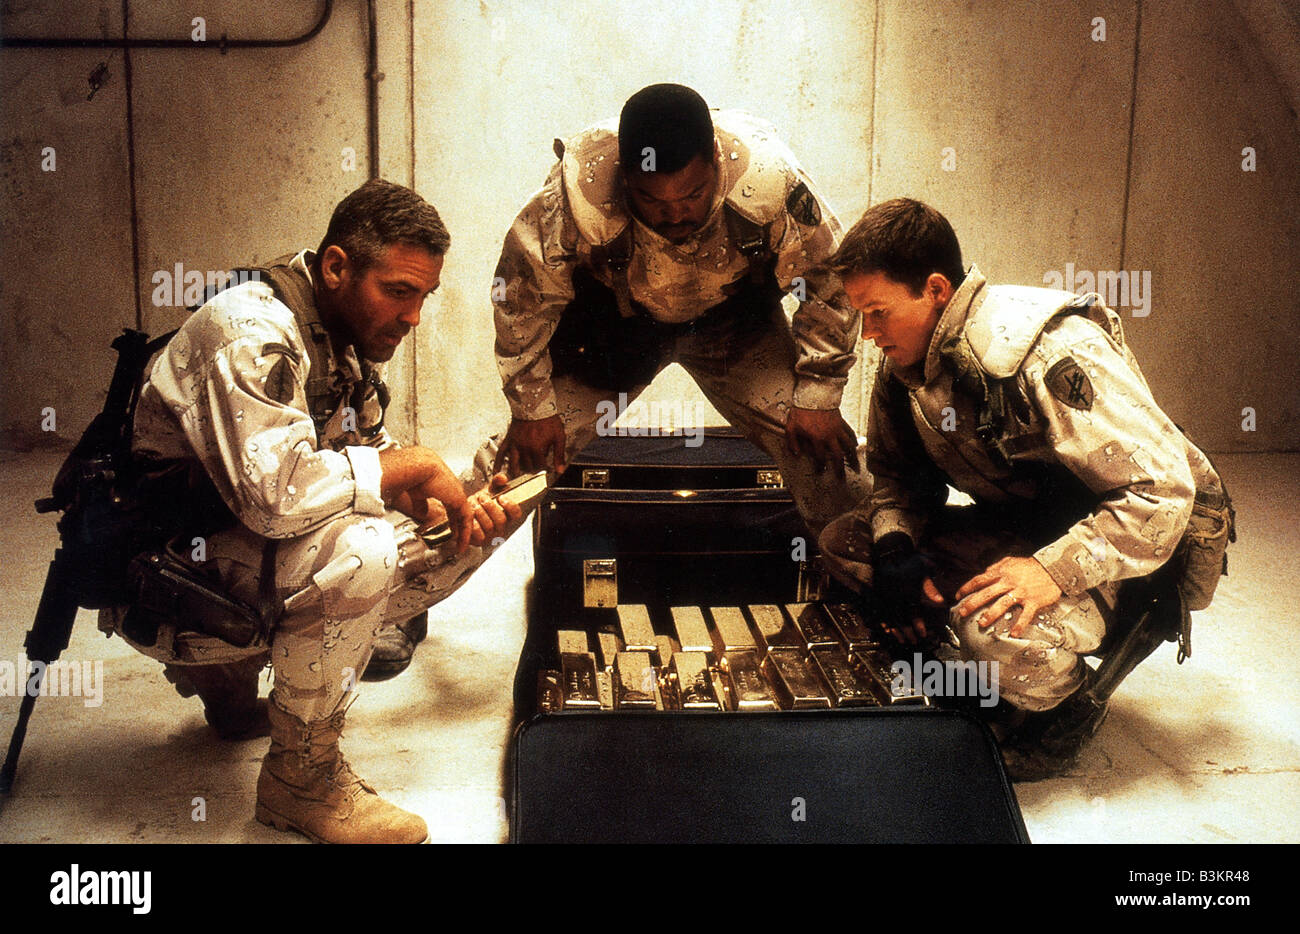 three kings 1999 warner film with from left george clooney ice cube and mark wahlberg